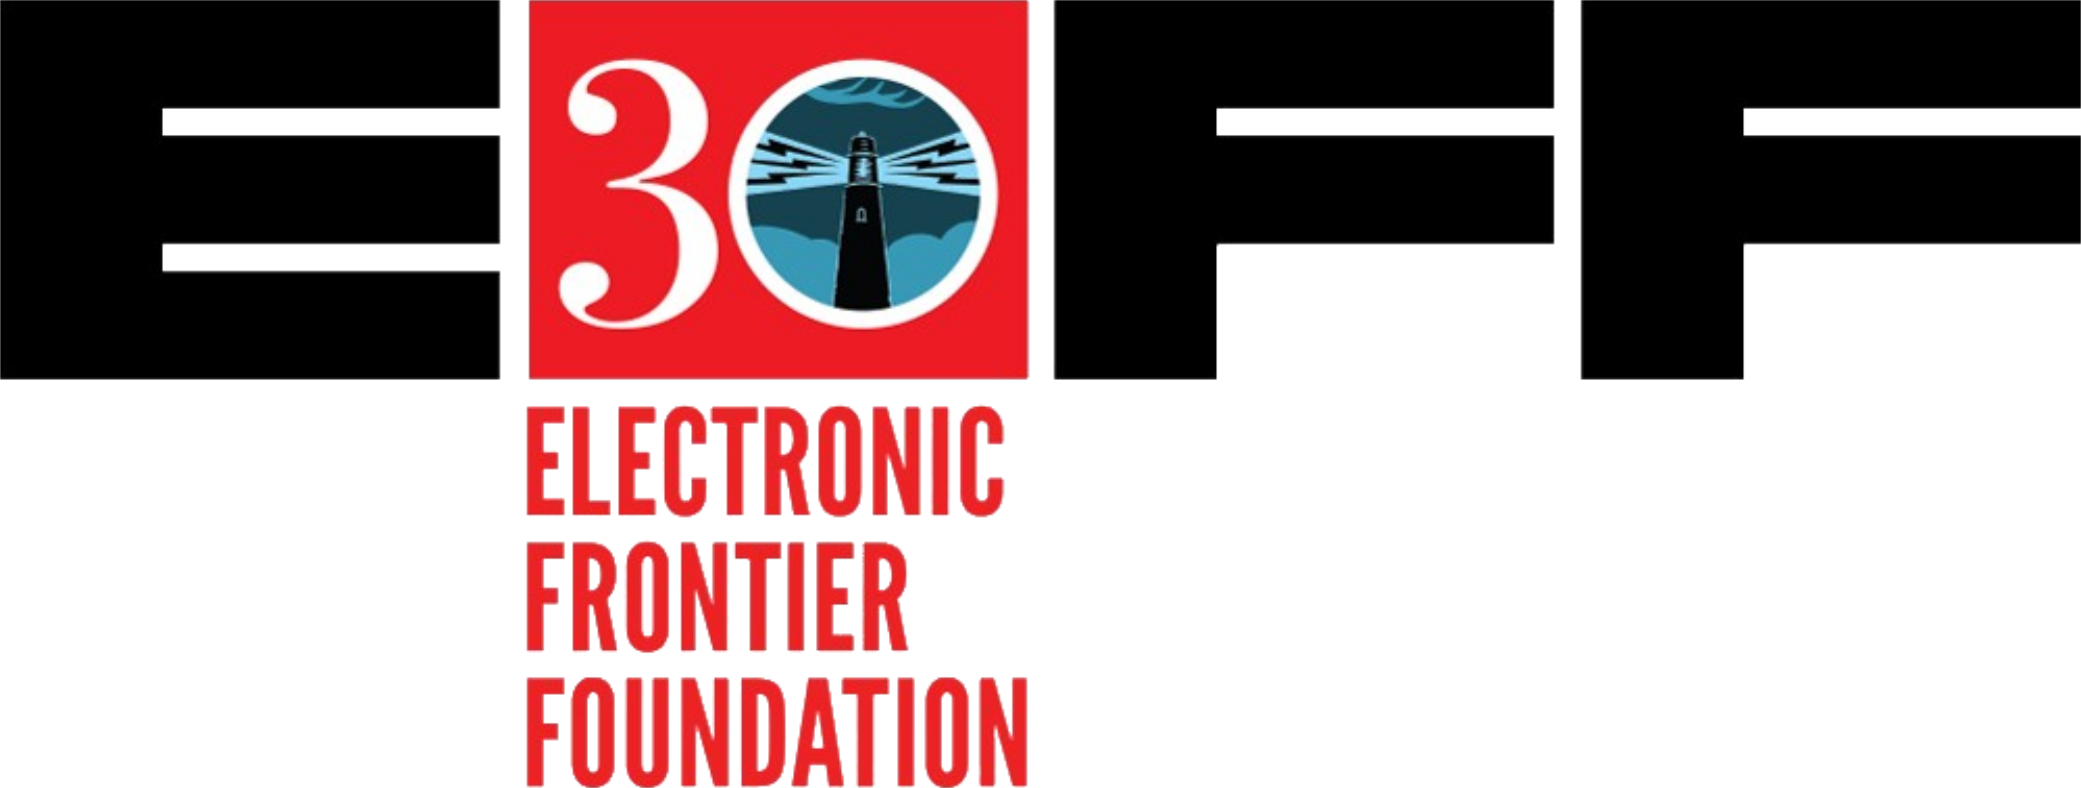 Electronic Frontier Foundation logo.